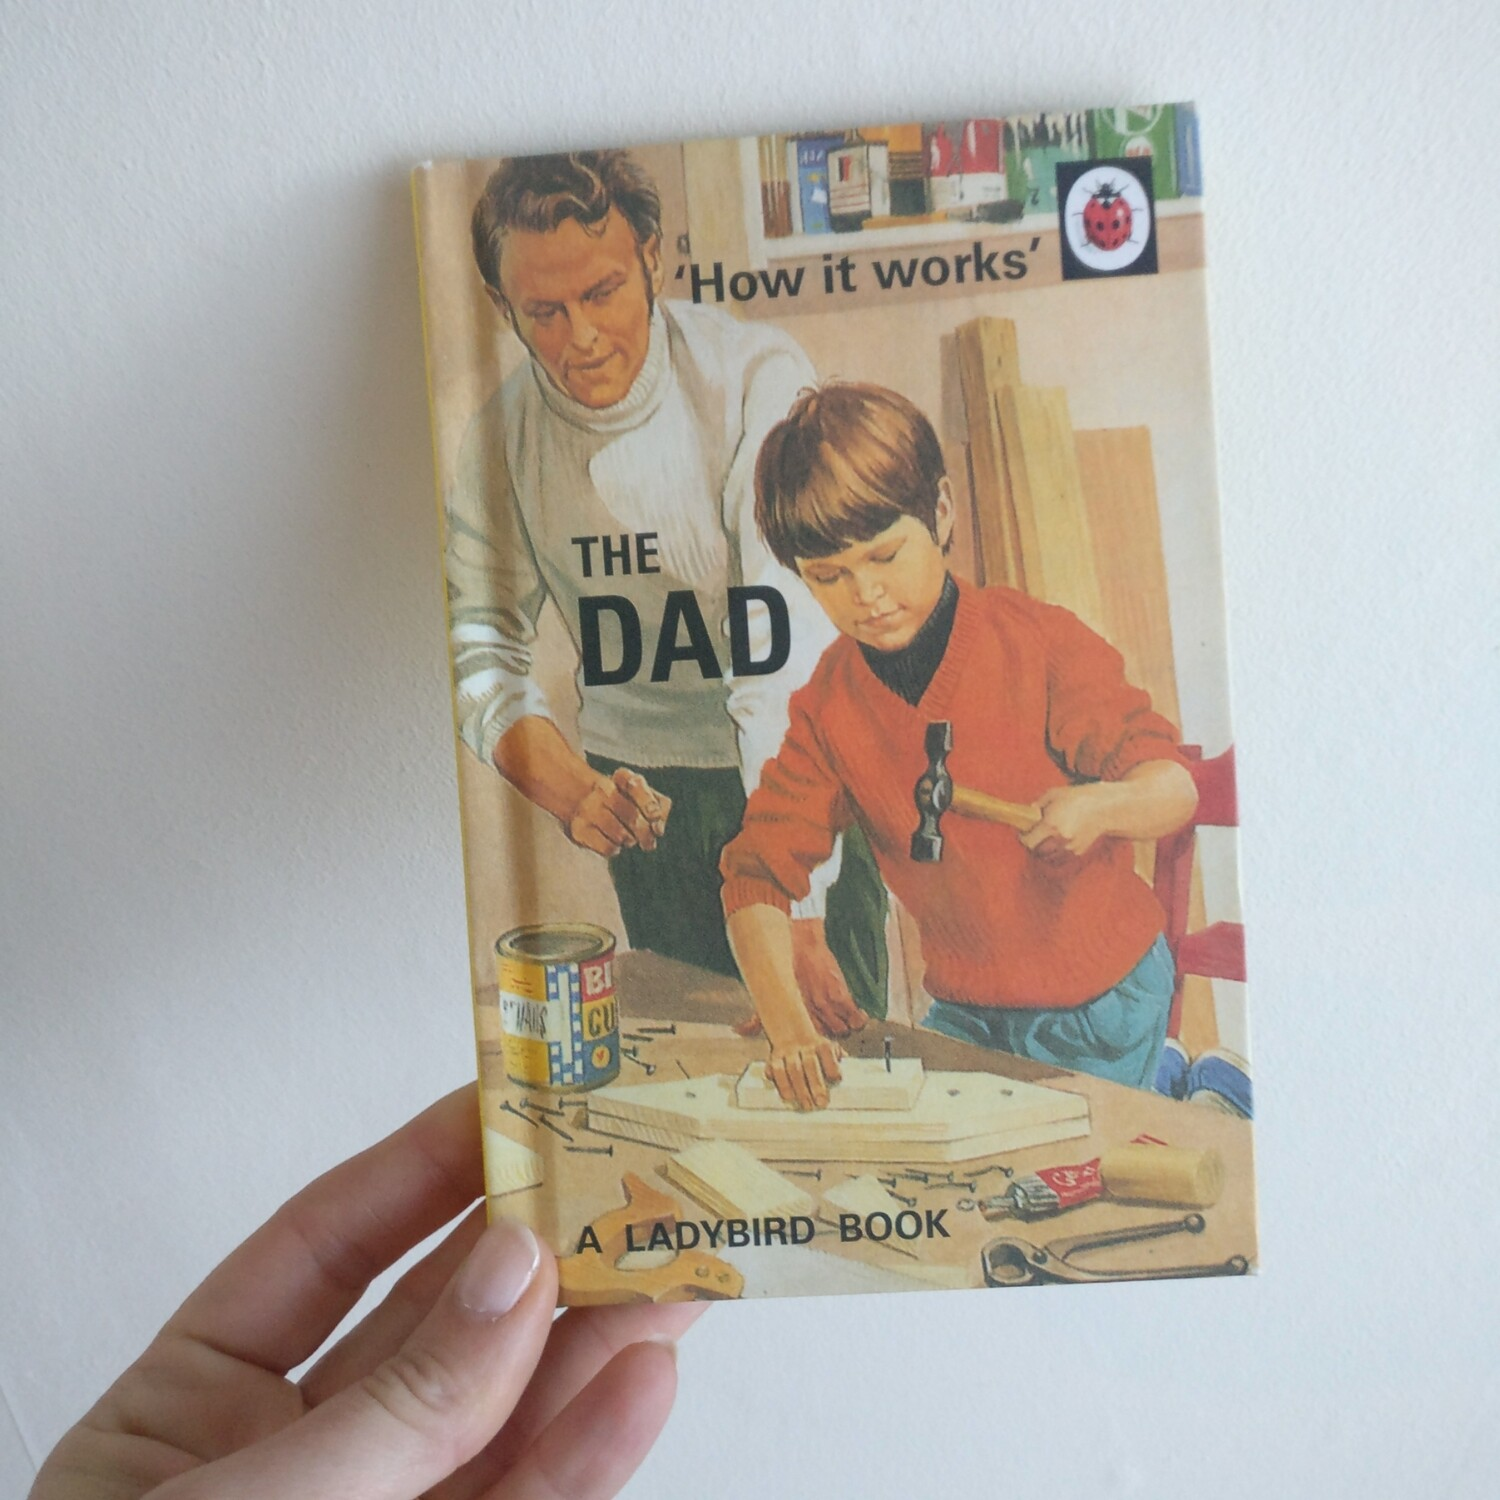 The Dad Notebook - Ladybird book